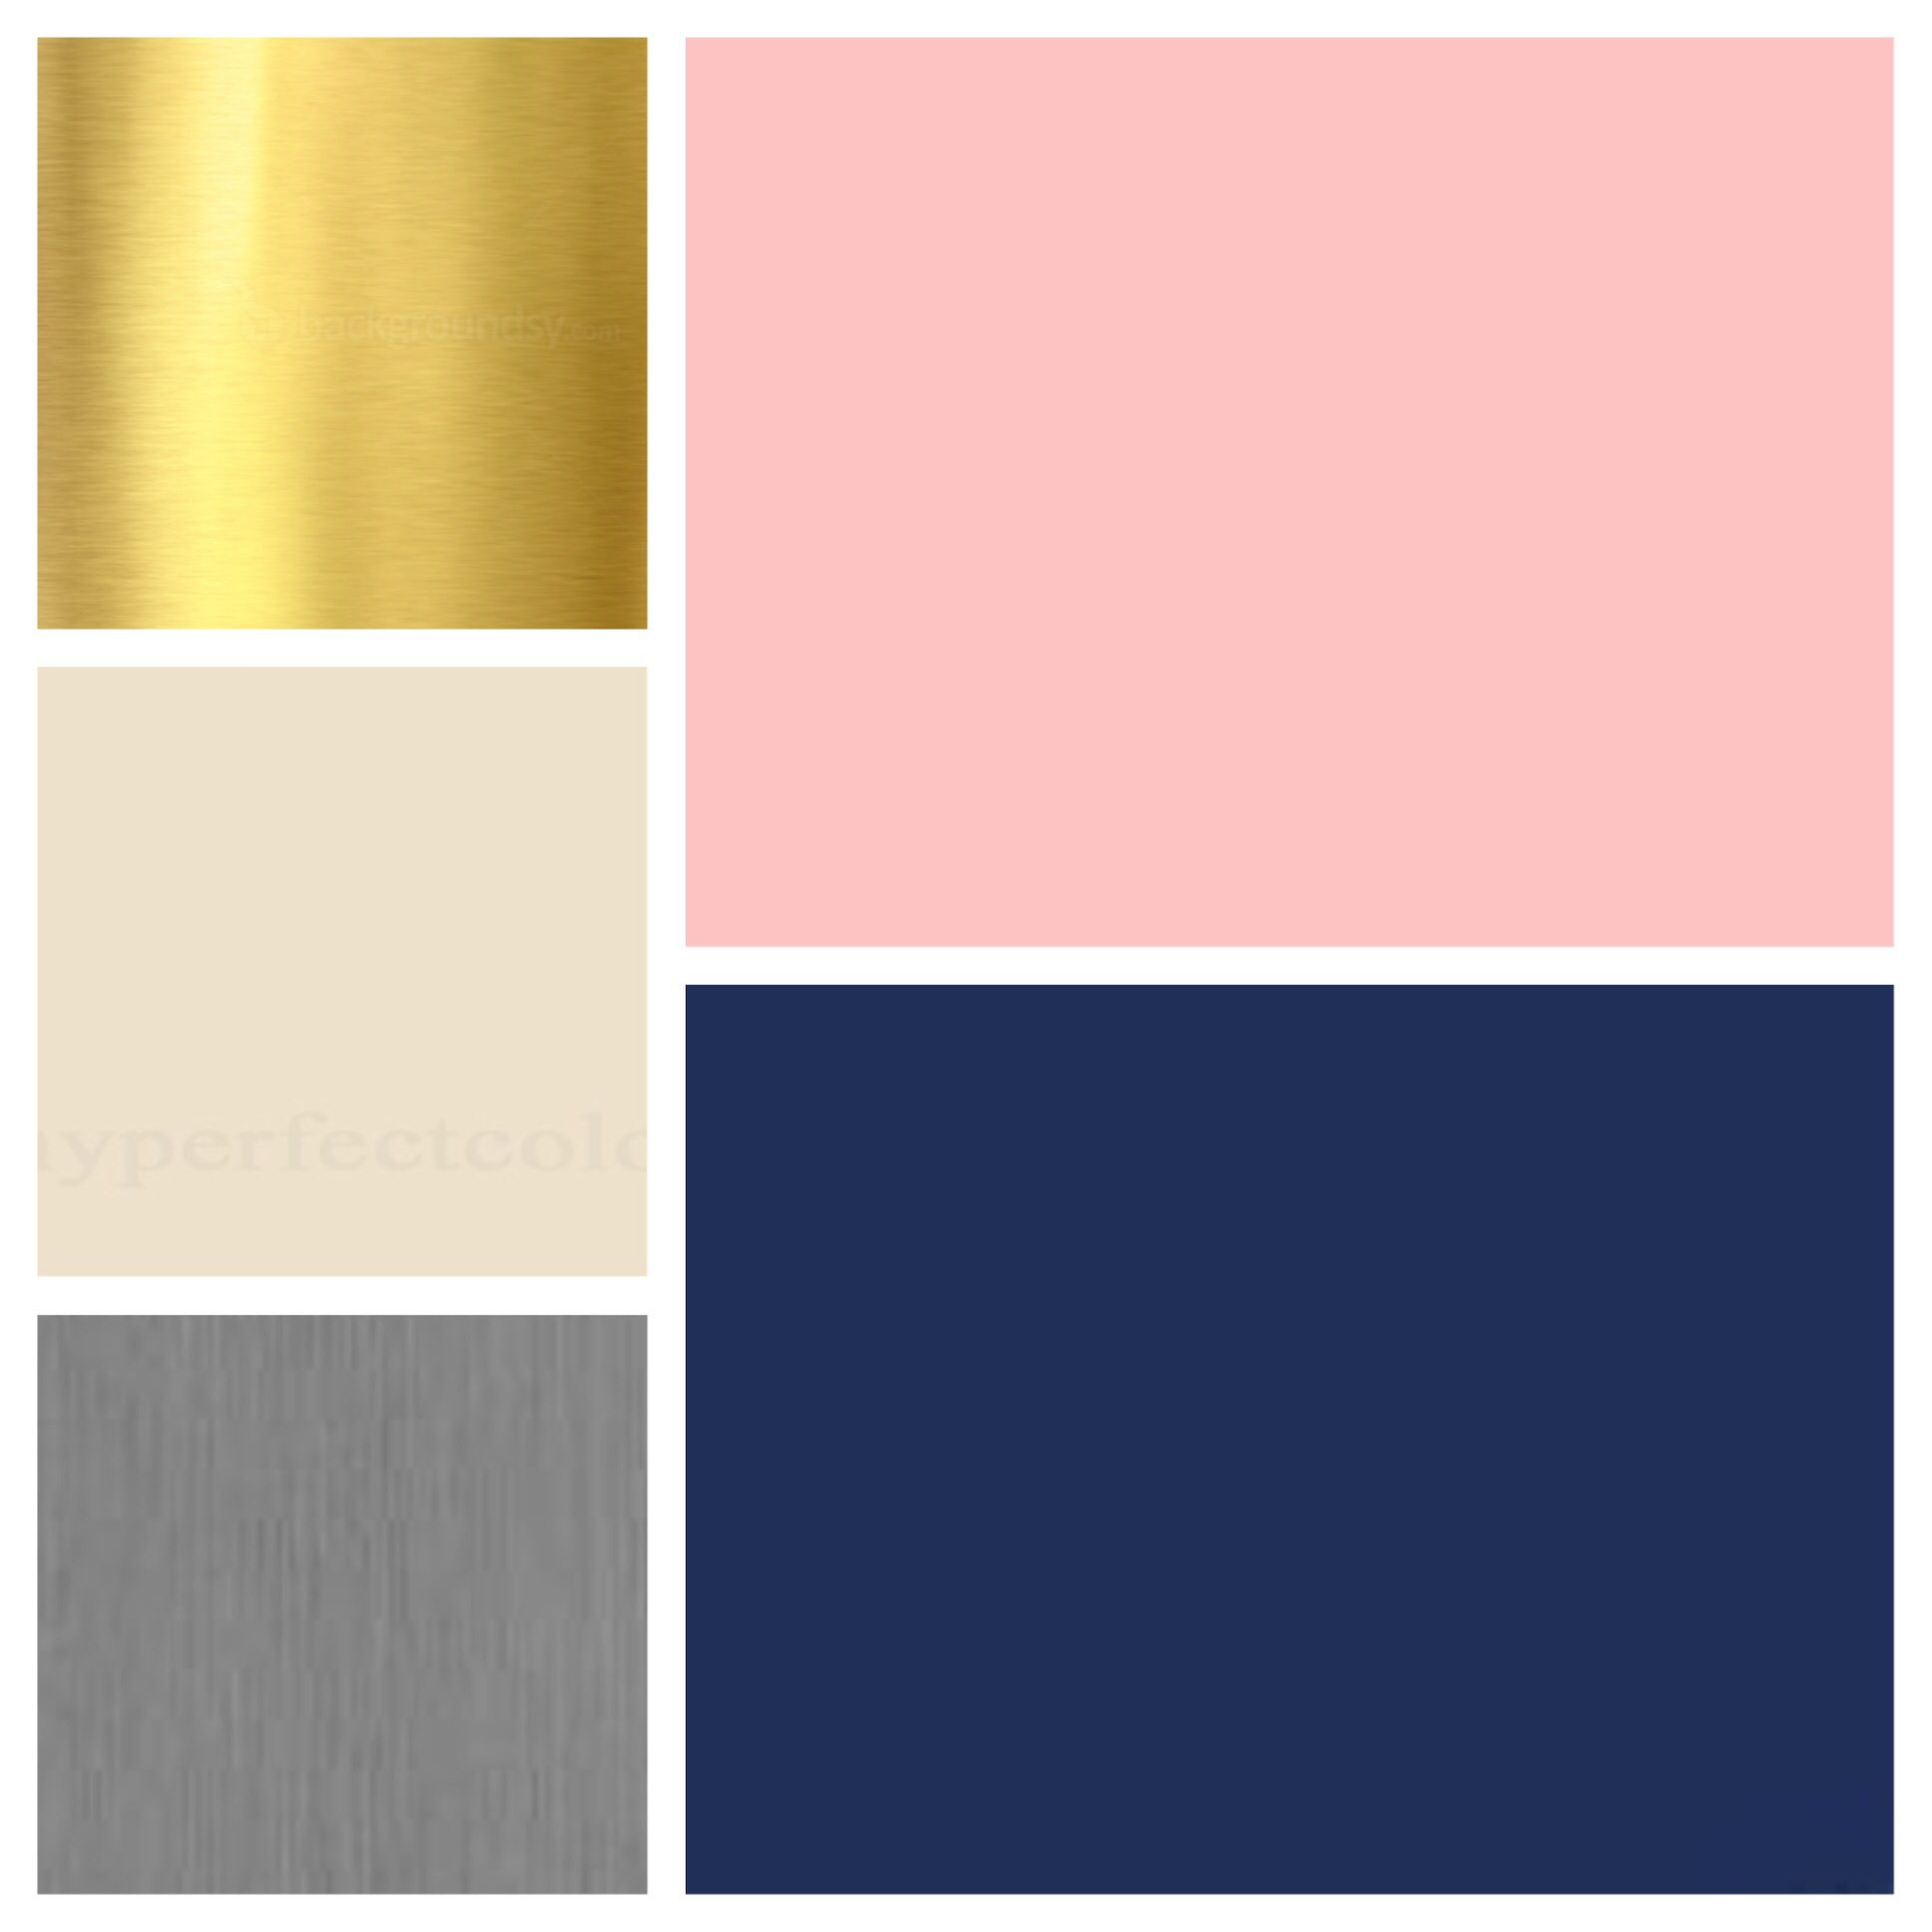 wedding colors: blush, navy, ivory, gold, grey (without ...